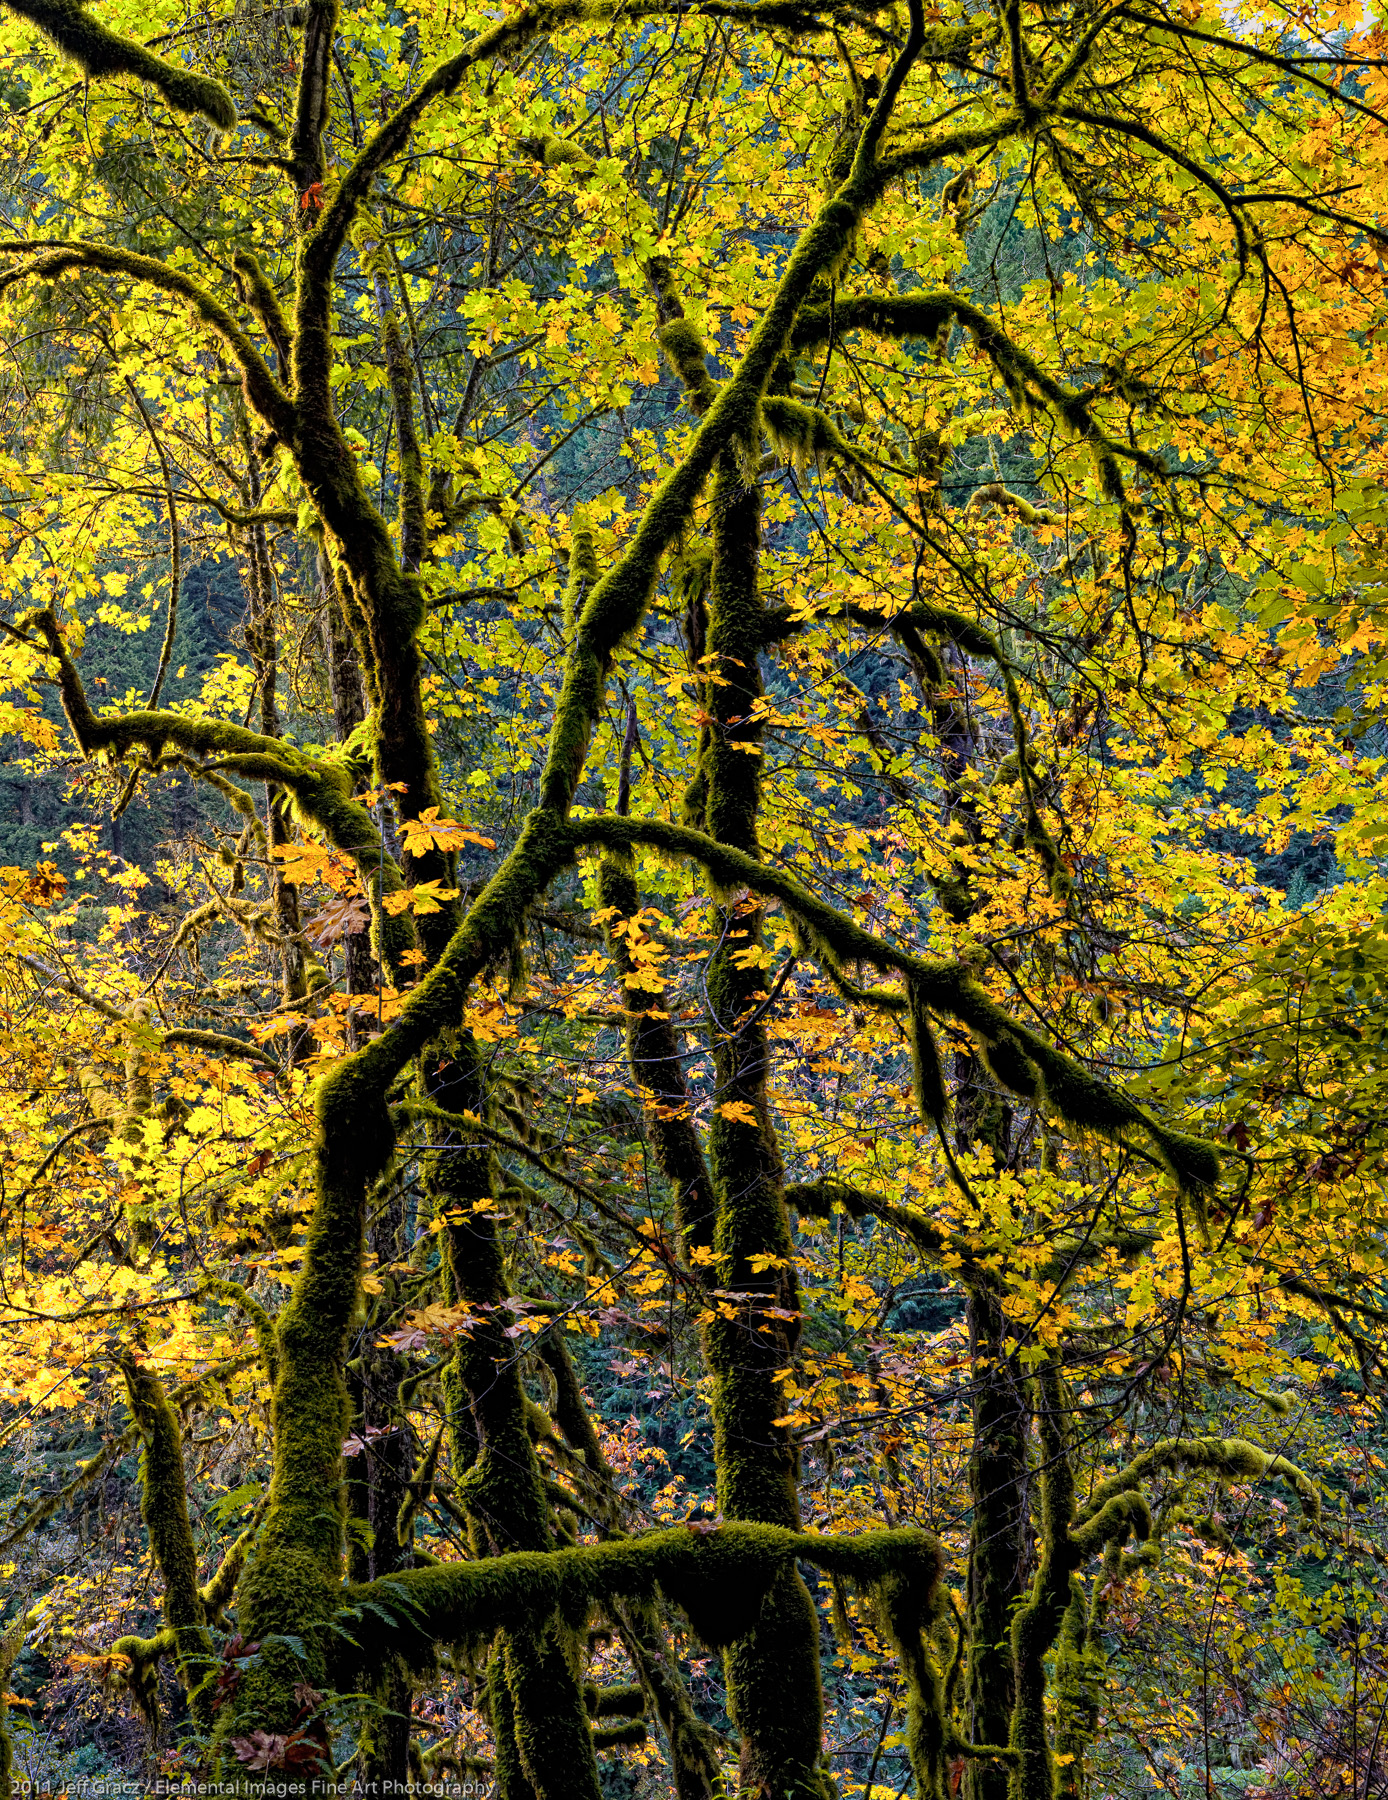 Eagel Creek Maples | Columbia River Gorge National Scenic Area | OR | USA - © 2011 Jeff Gracz / Elemental Images Fine Art Photography - All Rights Reserved Worldwide